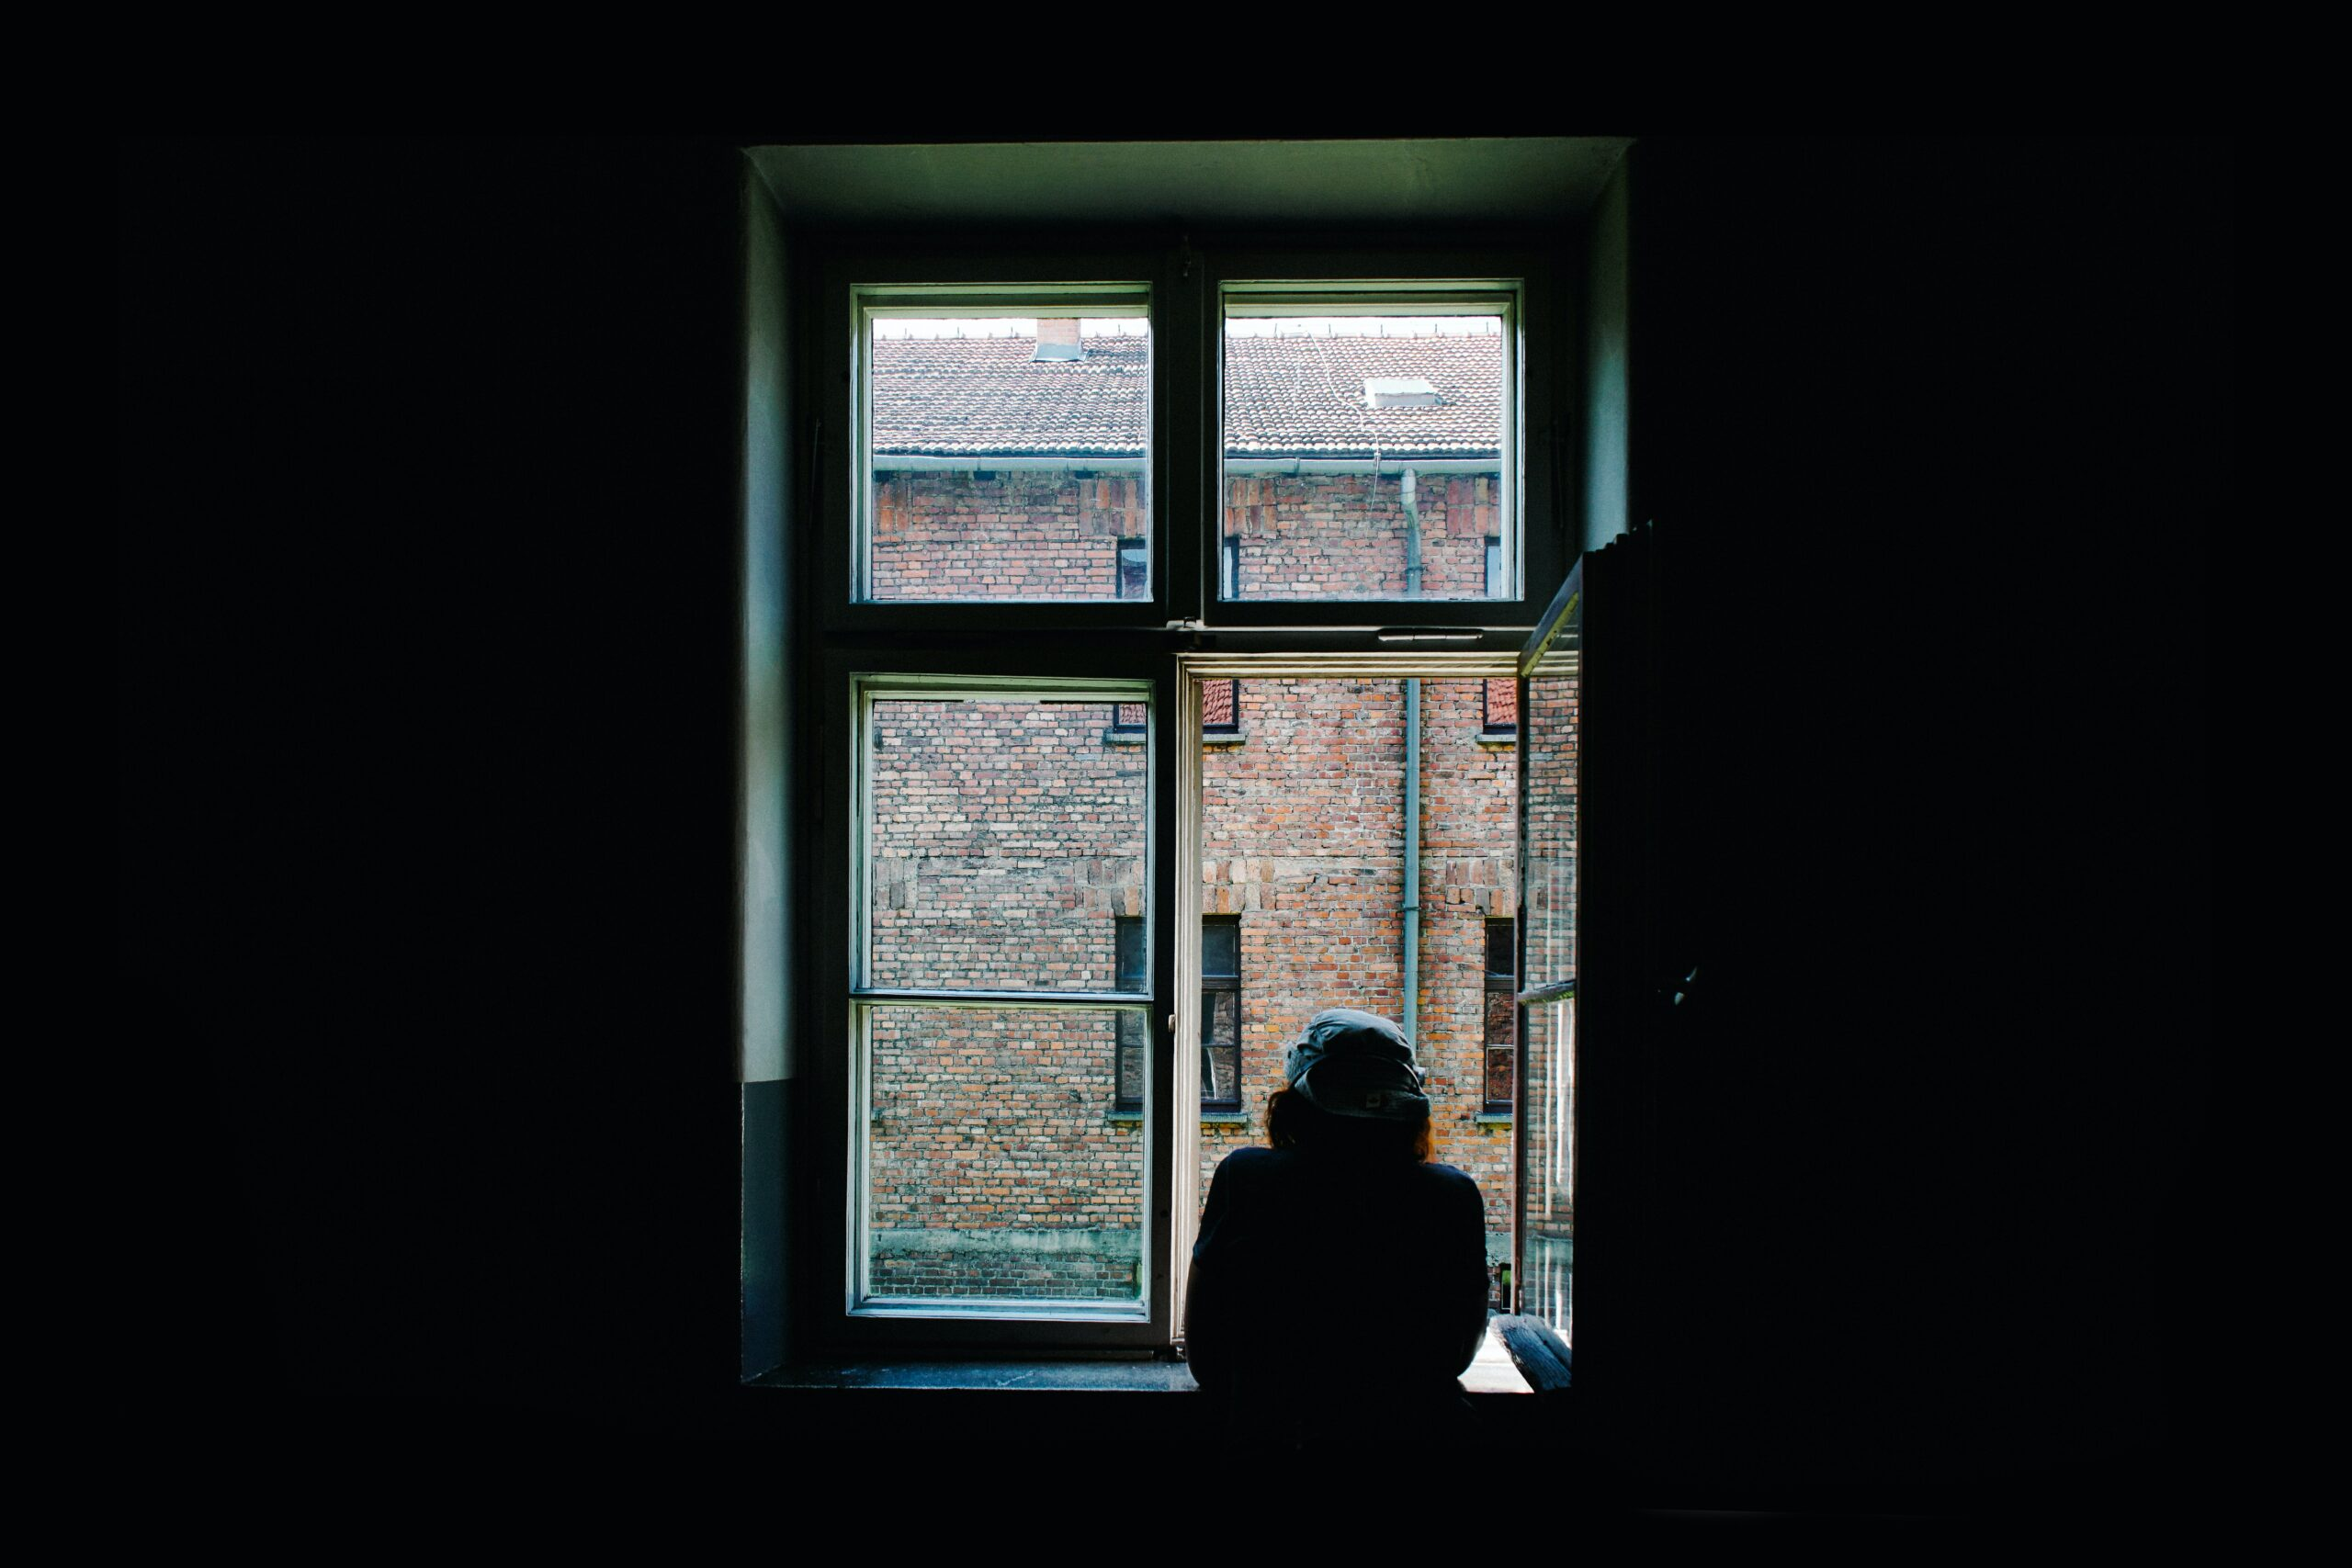 A woman looks out a window, bringing reflections of a different resolution for 2021